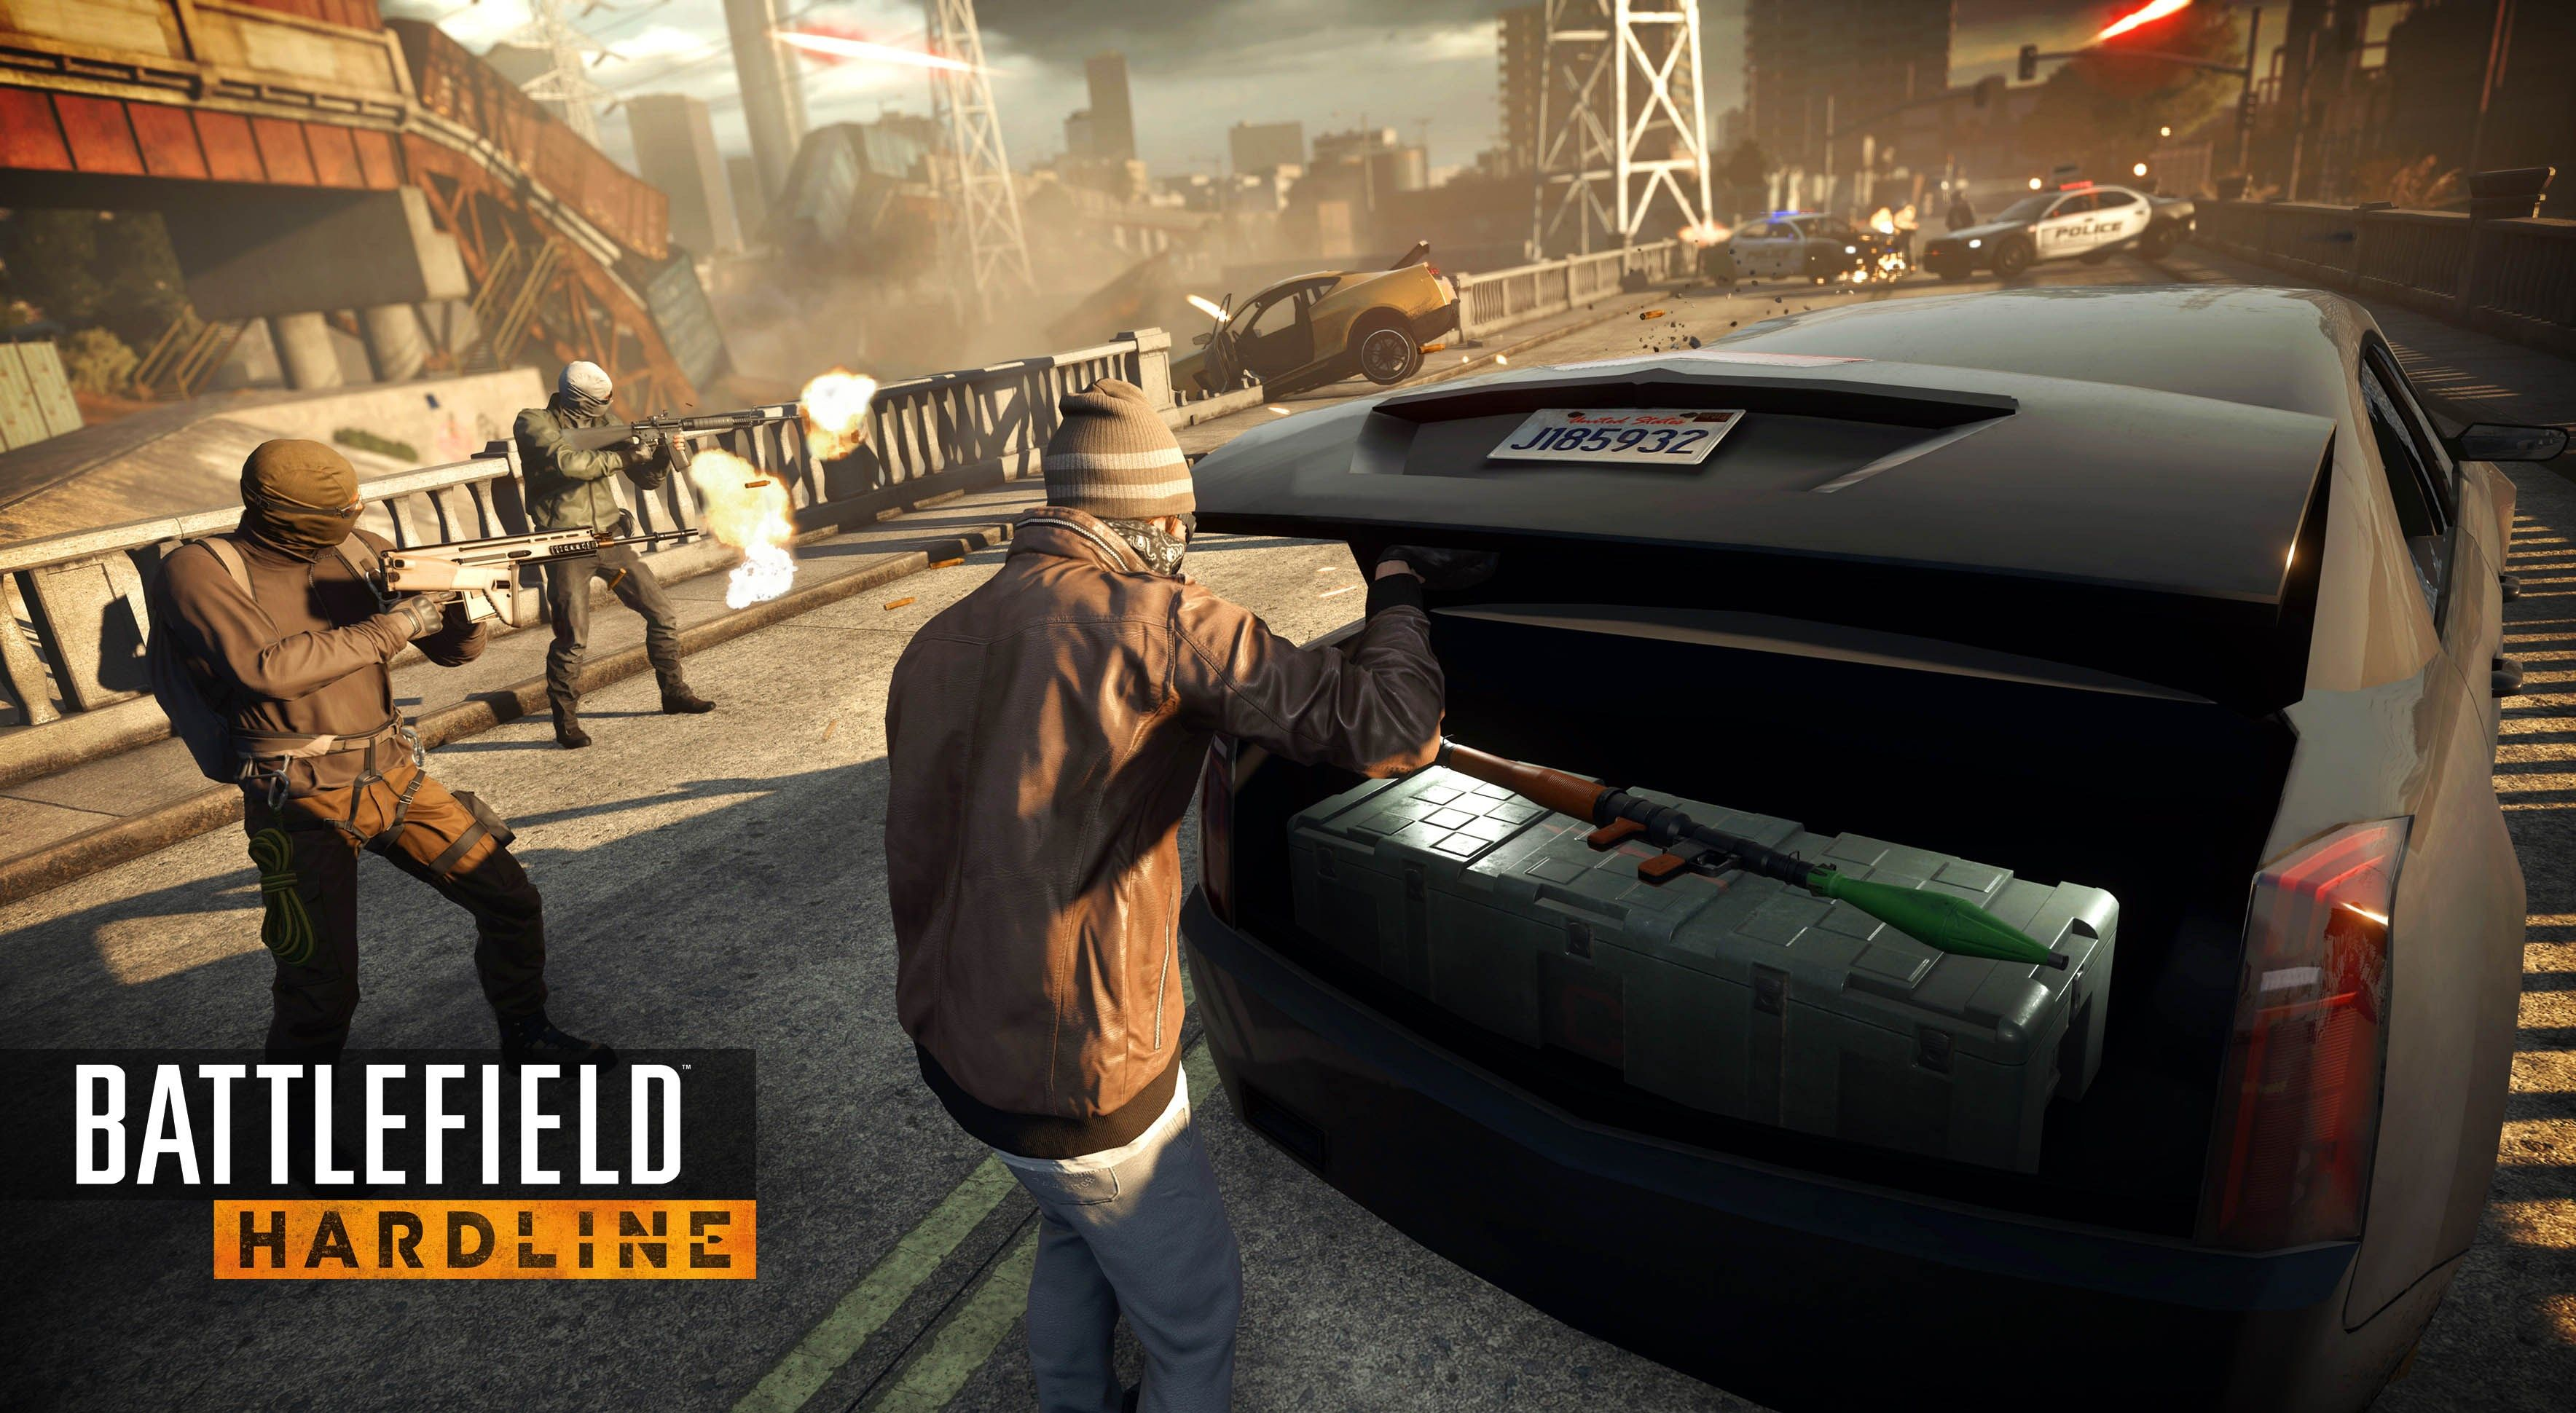 Battlefield Hardline Background Hd